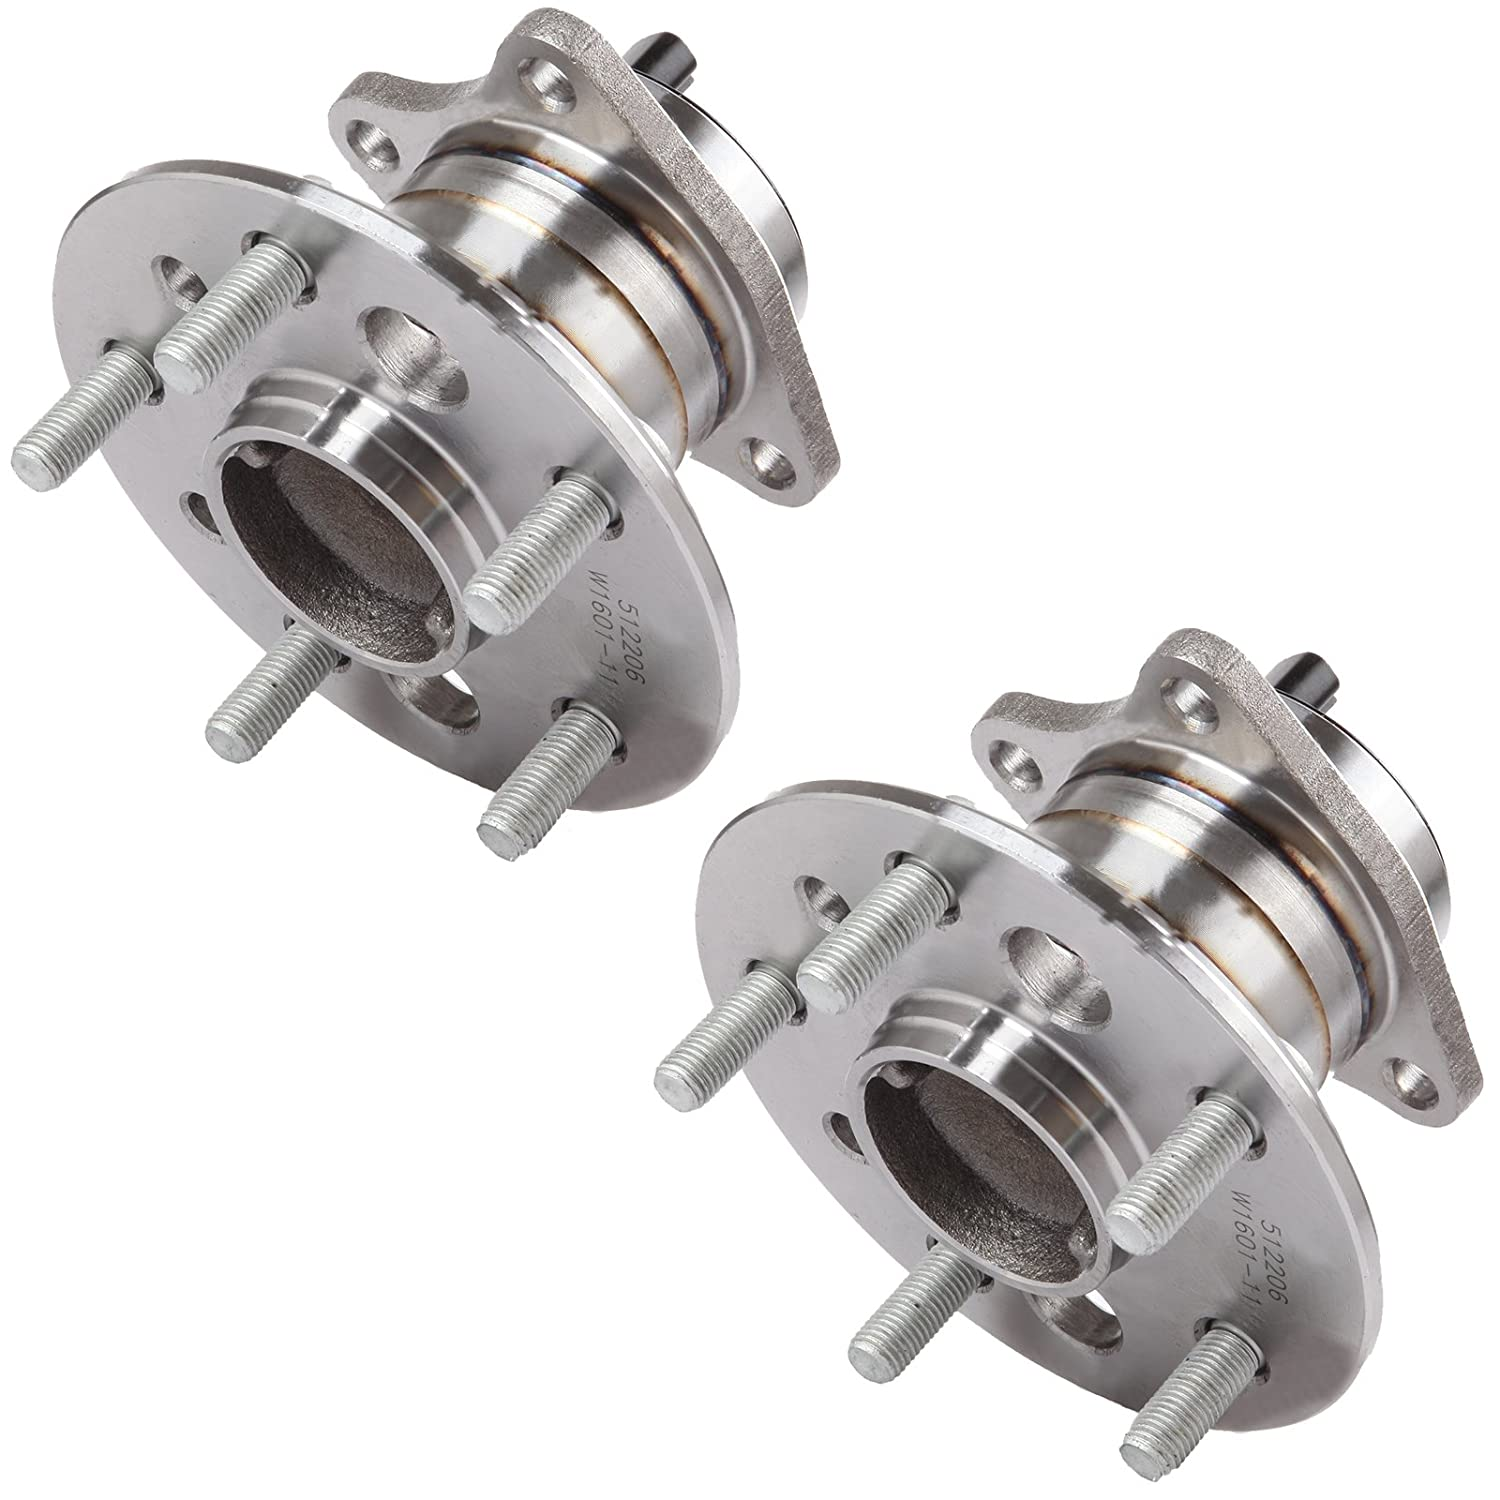 SCITOO 512206 Rear Wheel Hub Bearing Assembly fit 2005-2012 Toyota Lexus 5 Lugs w//ABS